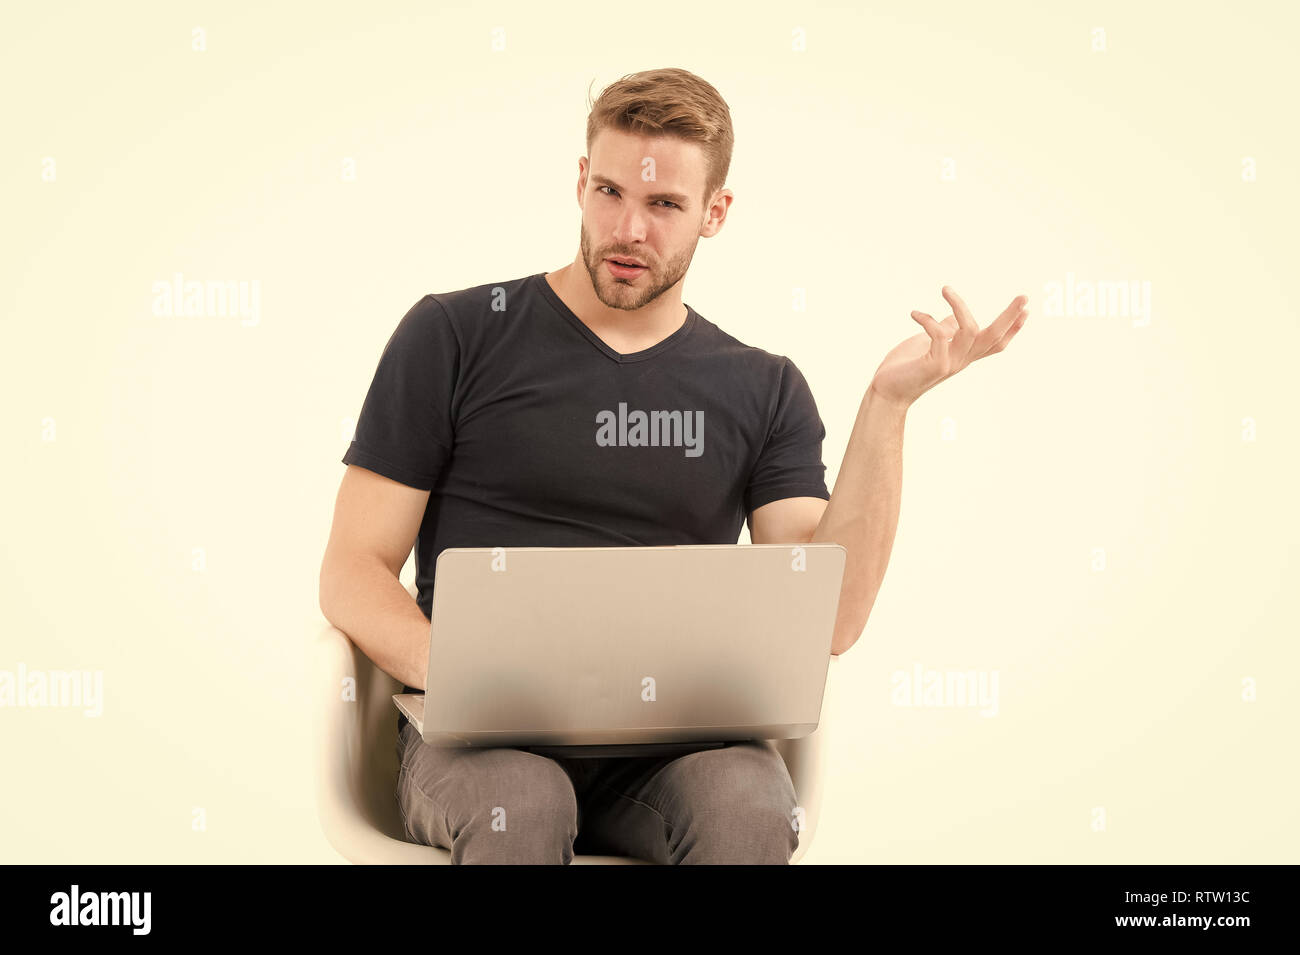 Macho use laptop isolated on white. Man with personal computer in casual wear. Agile business and communication. Handsome blogger. Modern life in social network. Internet surfing and virtual world. - Stock Image